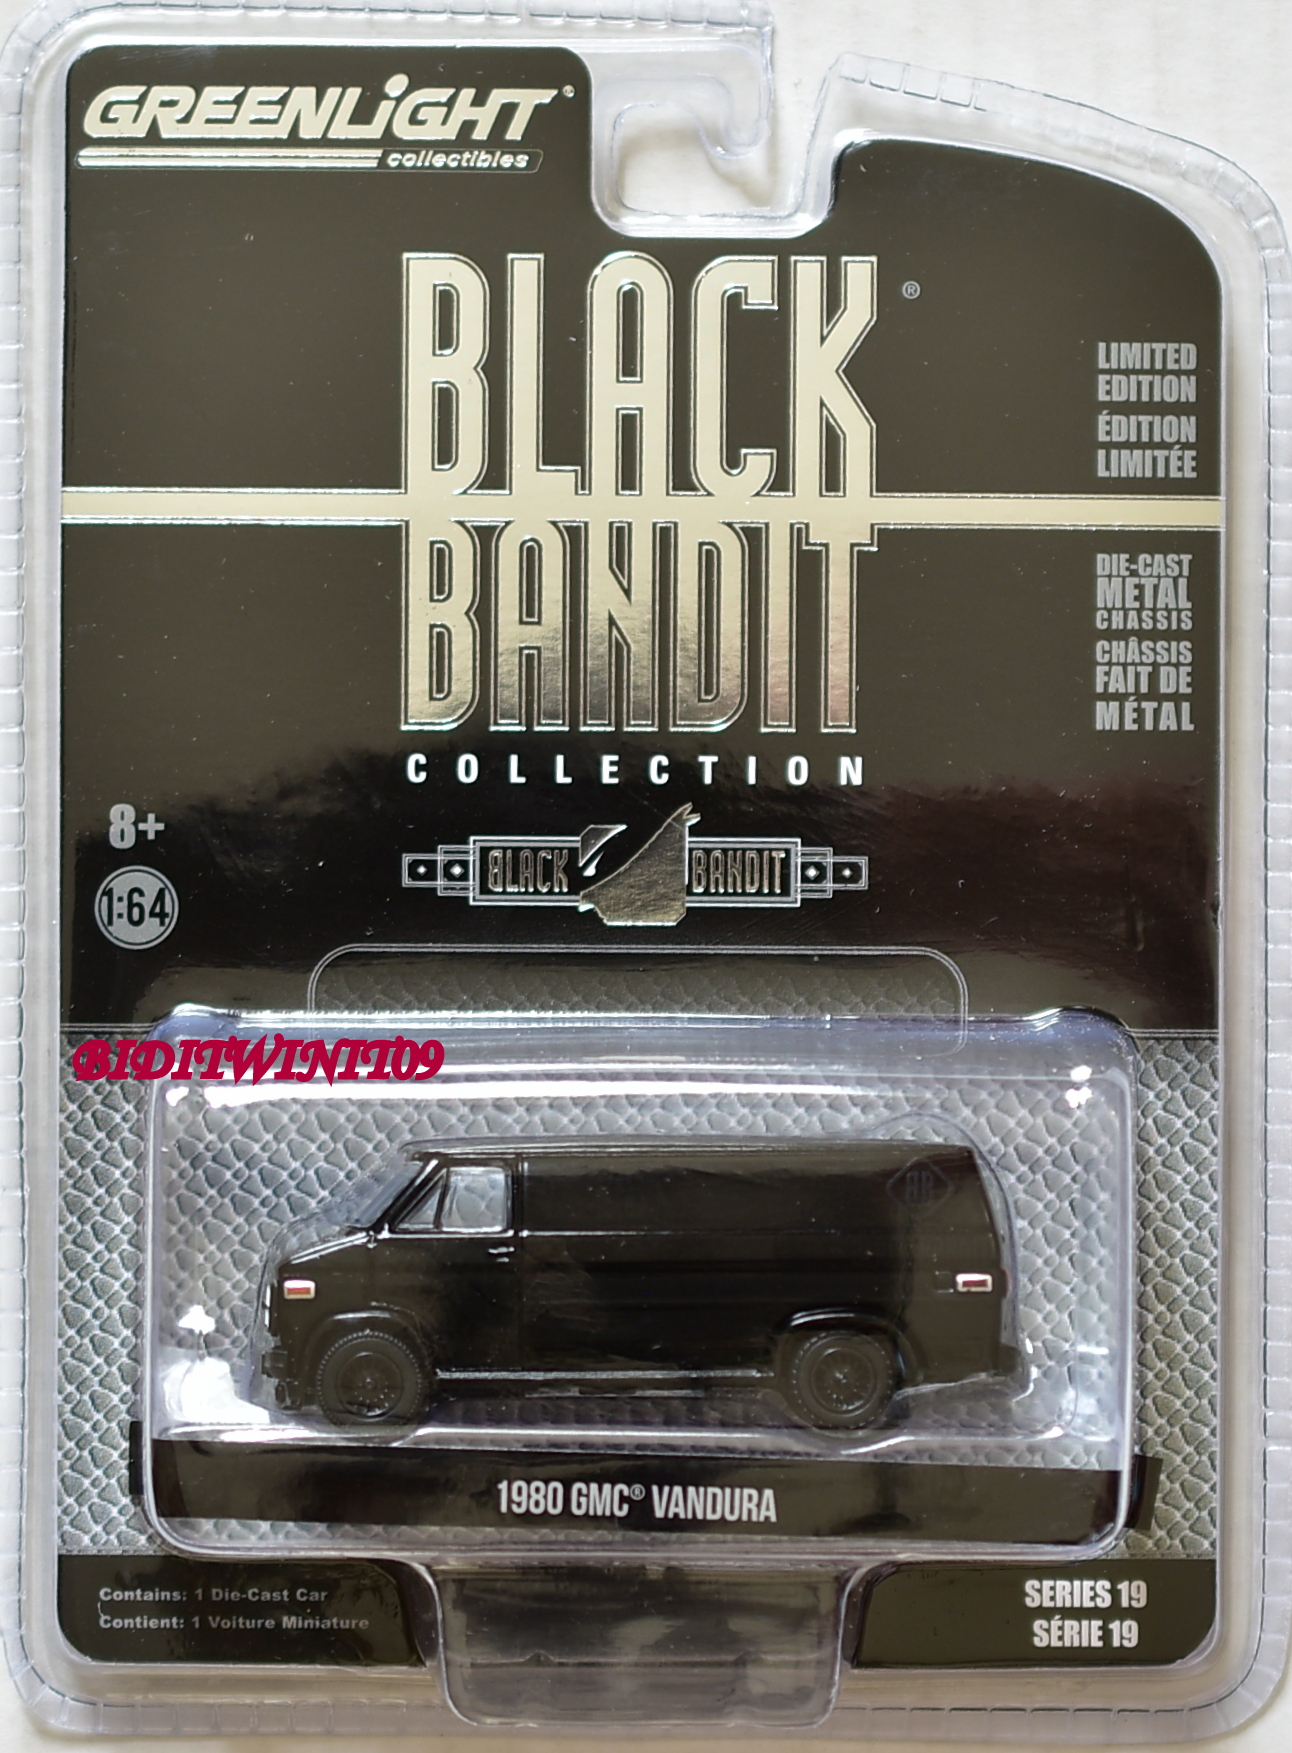 GREENLIGHT 2018 BLACK BANDIT SERIES 19 1980 GMC VANDURA